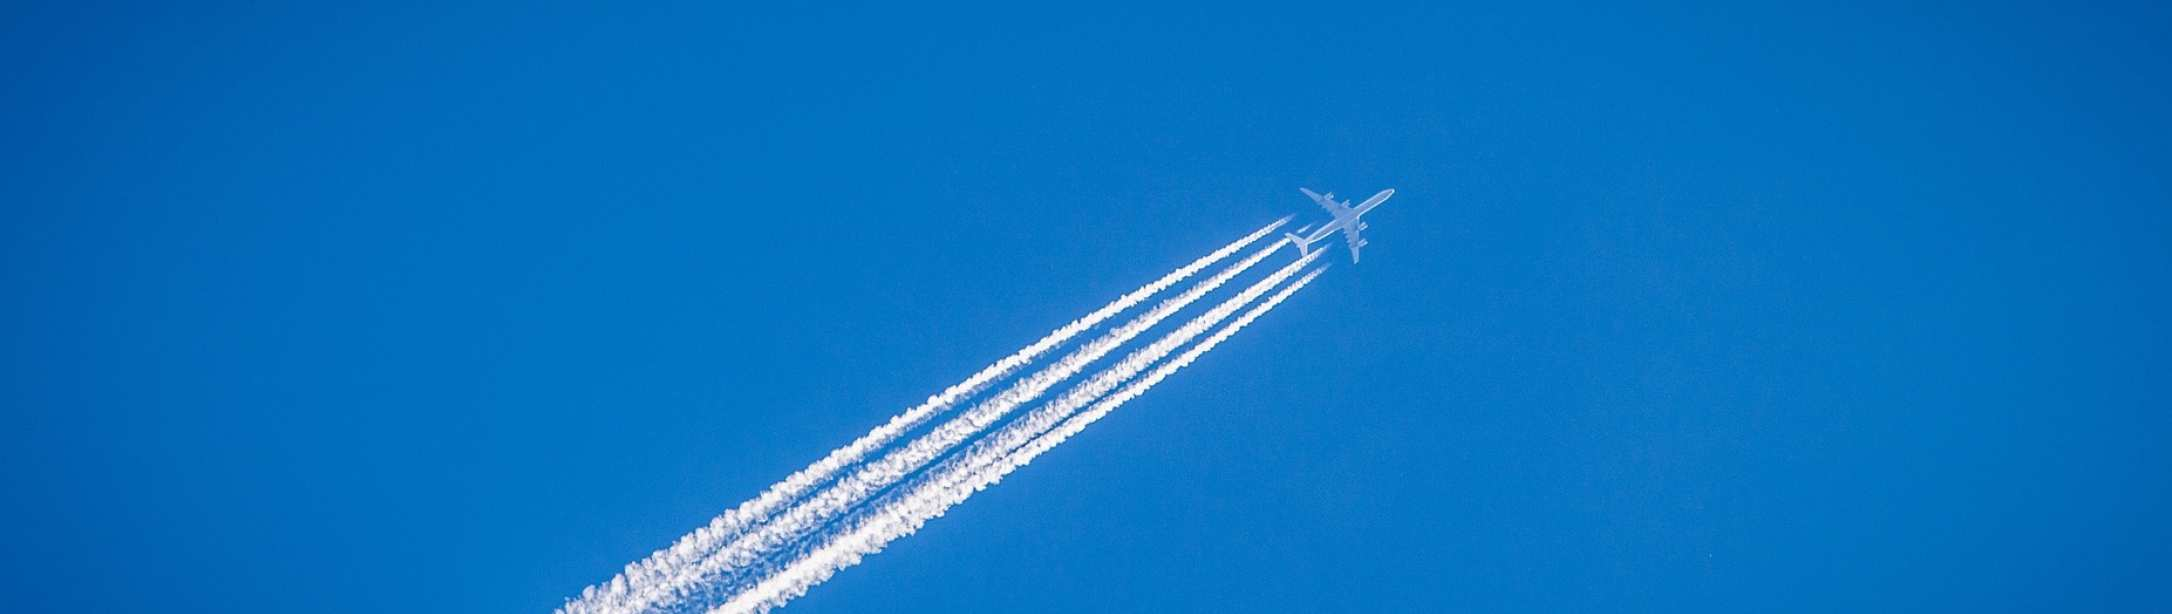 Airplane and contrail